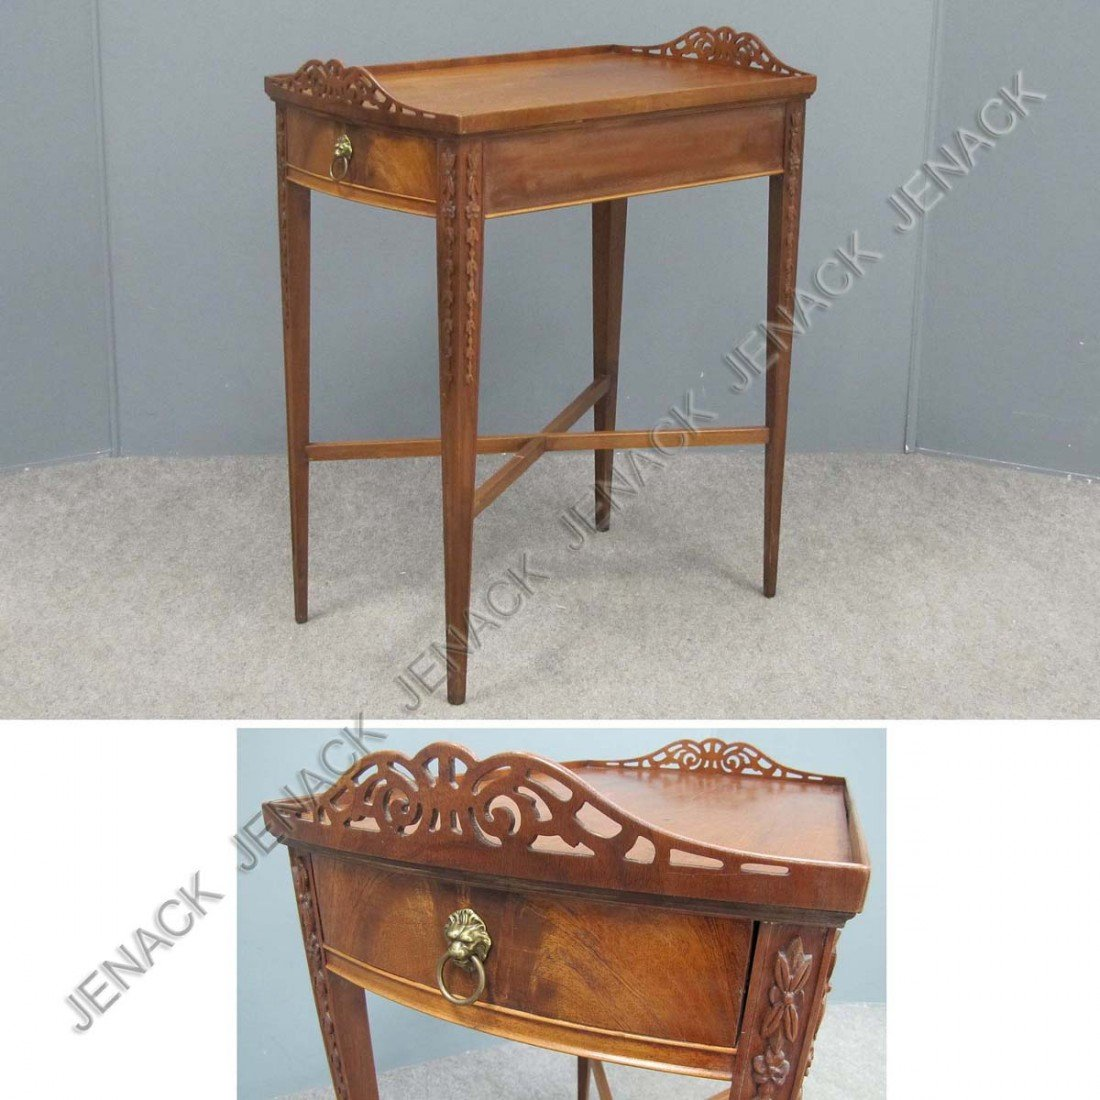 7: REGENCY STYLE CARVED MAHOGANY SINGLE-DRAWER STAND